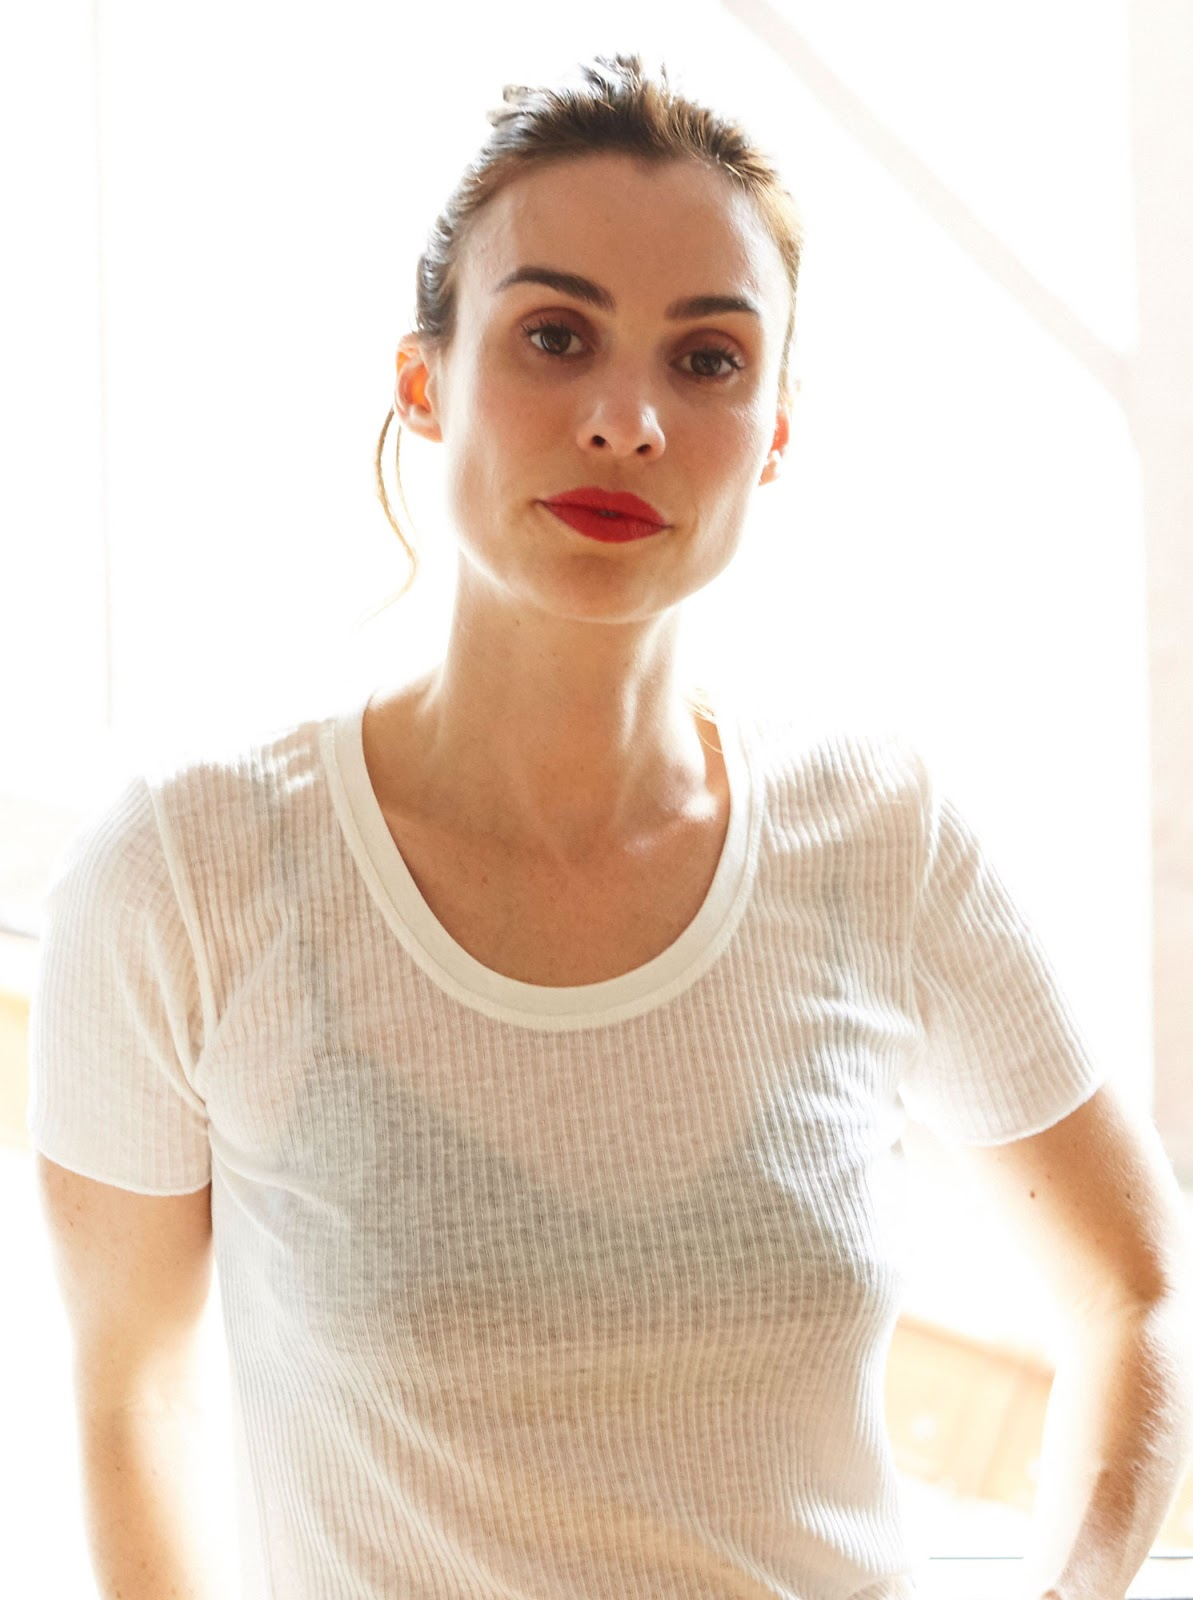 Cool Weekend Outfit Idea — Matte Red Lip, Sheer White T-Shirt, and Black Bra